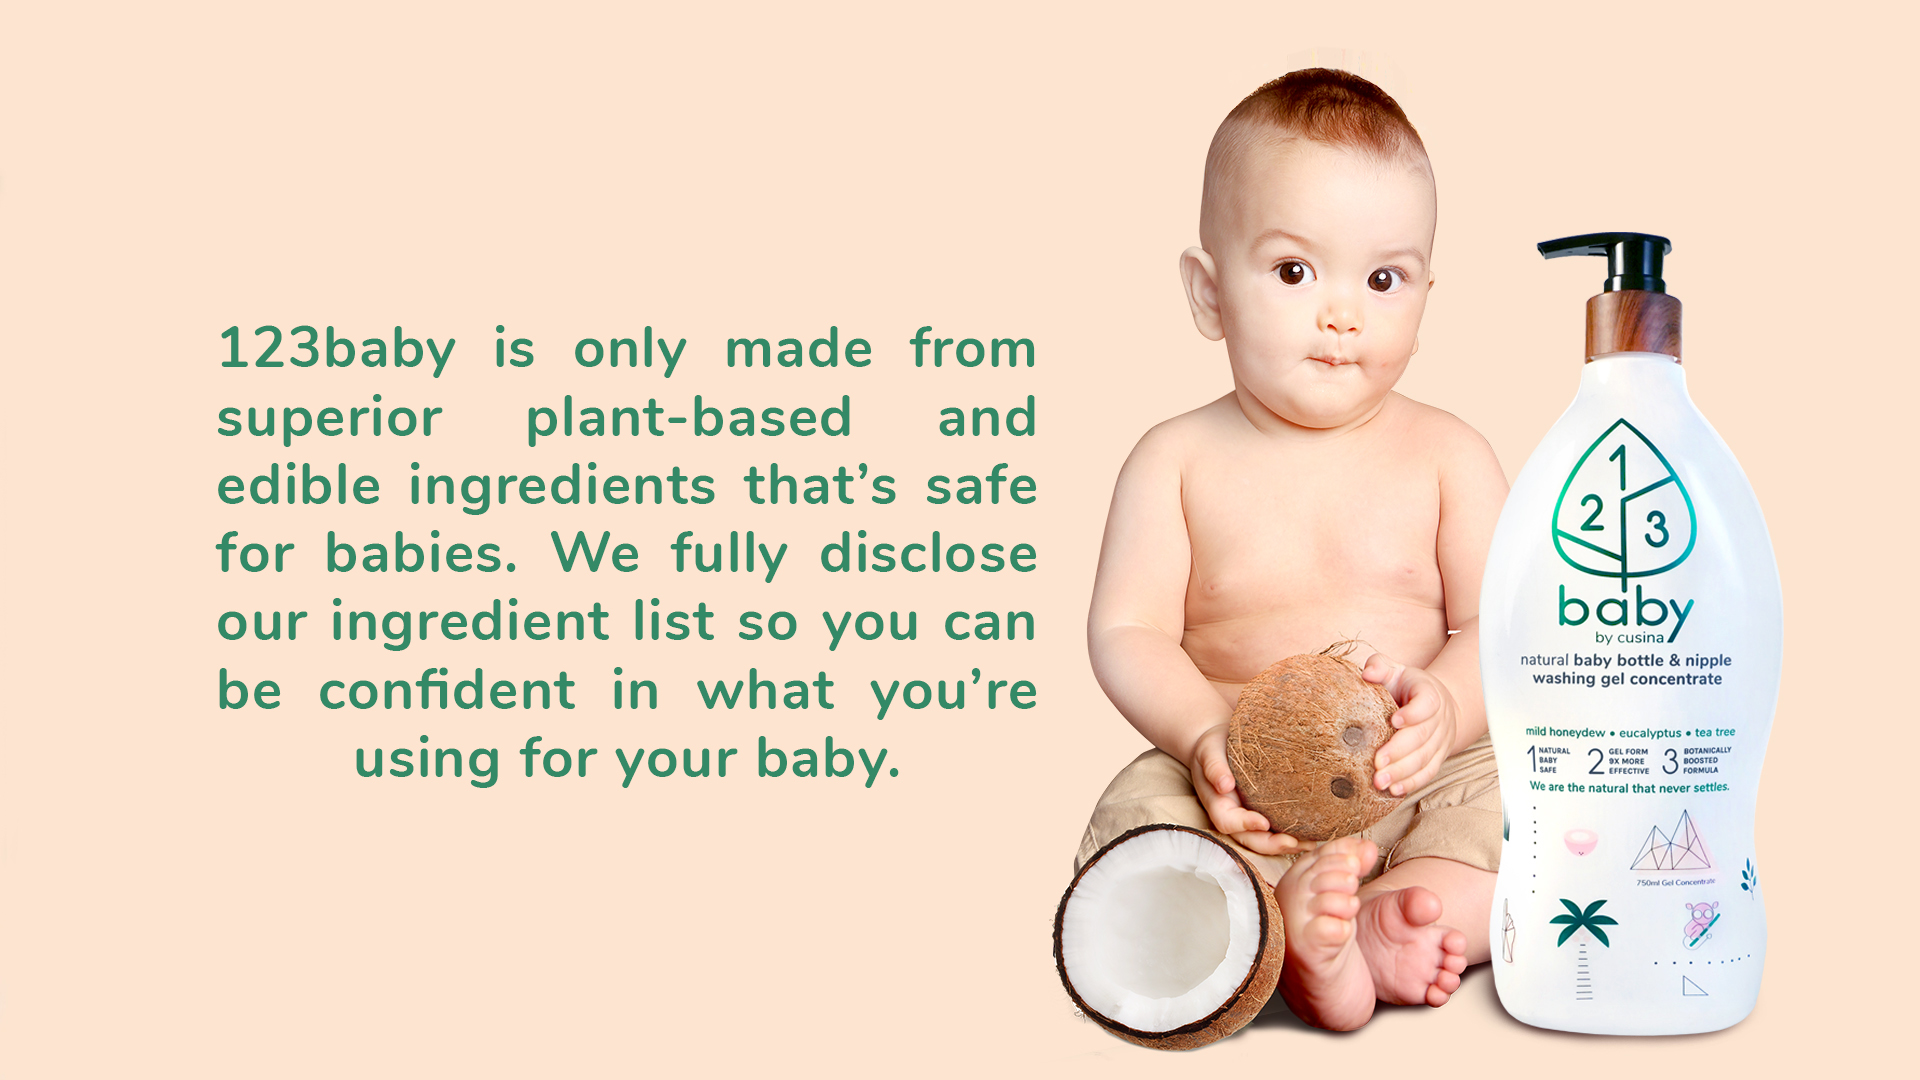 123baby is only made from superior plant-based and edible ingredients.